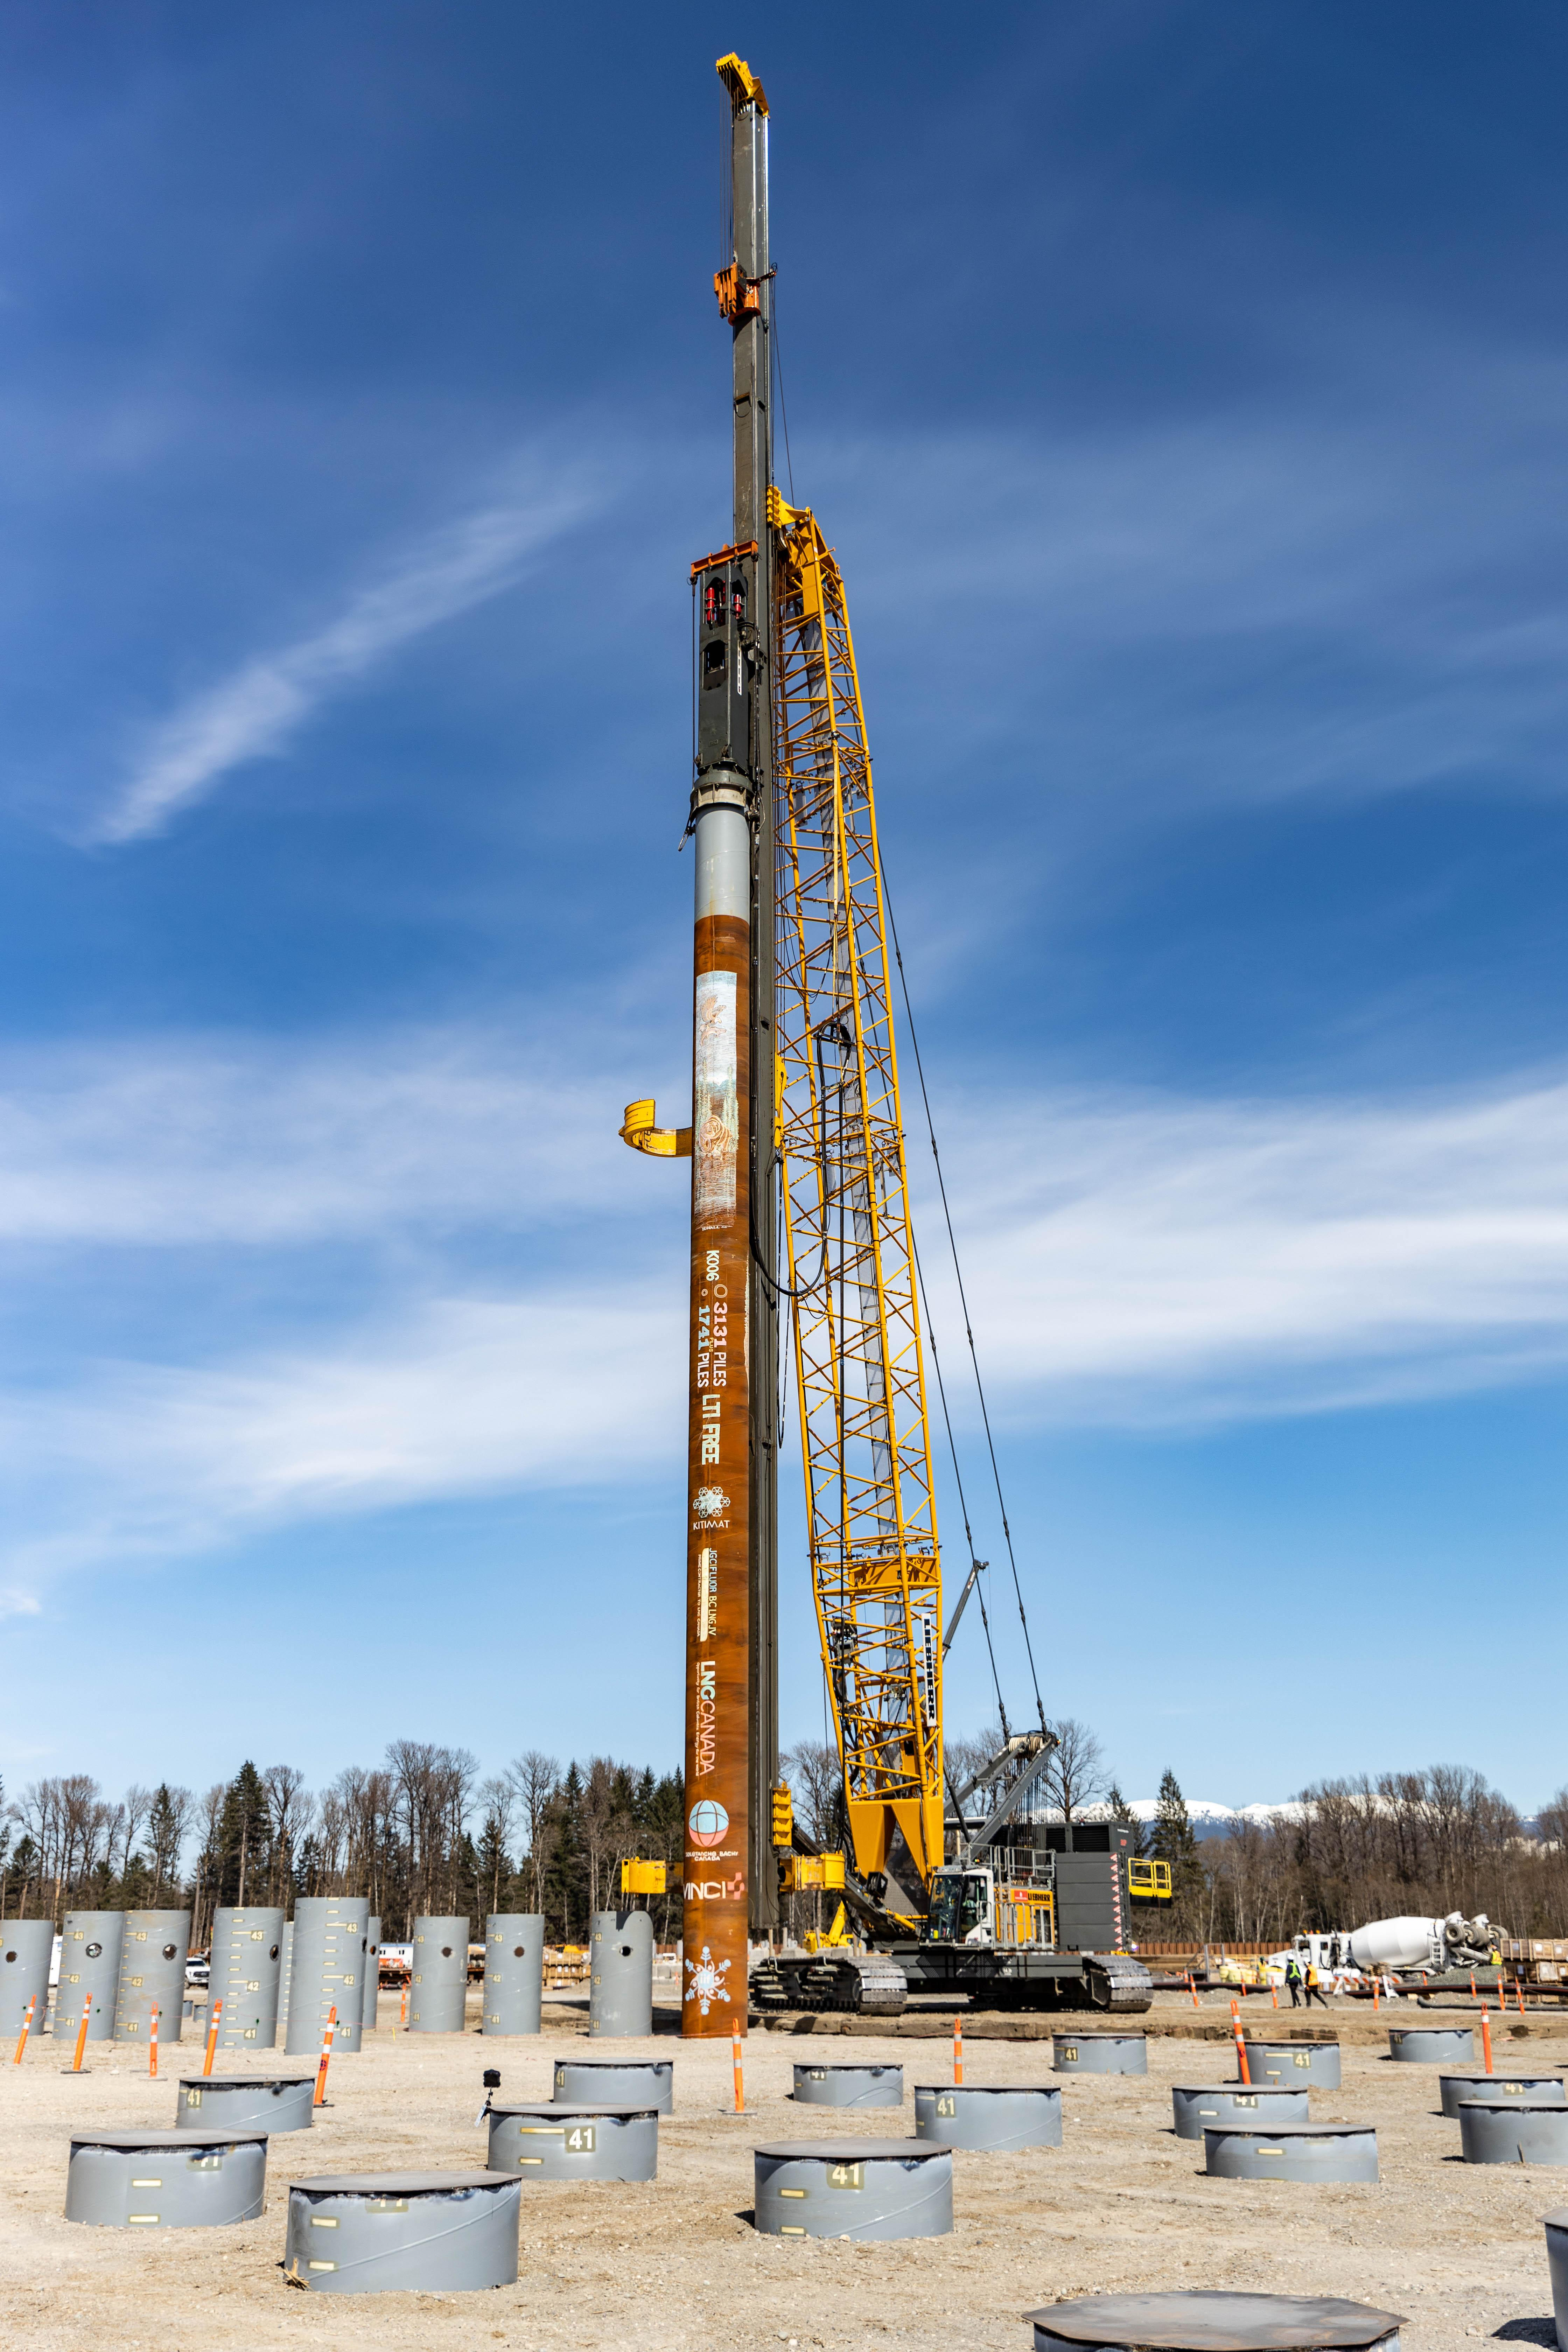 The last pile of the Phase 1 Plant Piling program at the LNG Canada site in Kitimat, B.C.